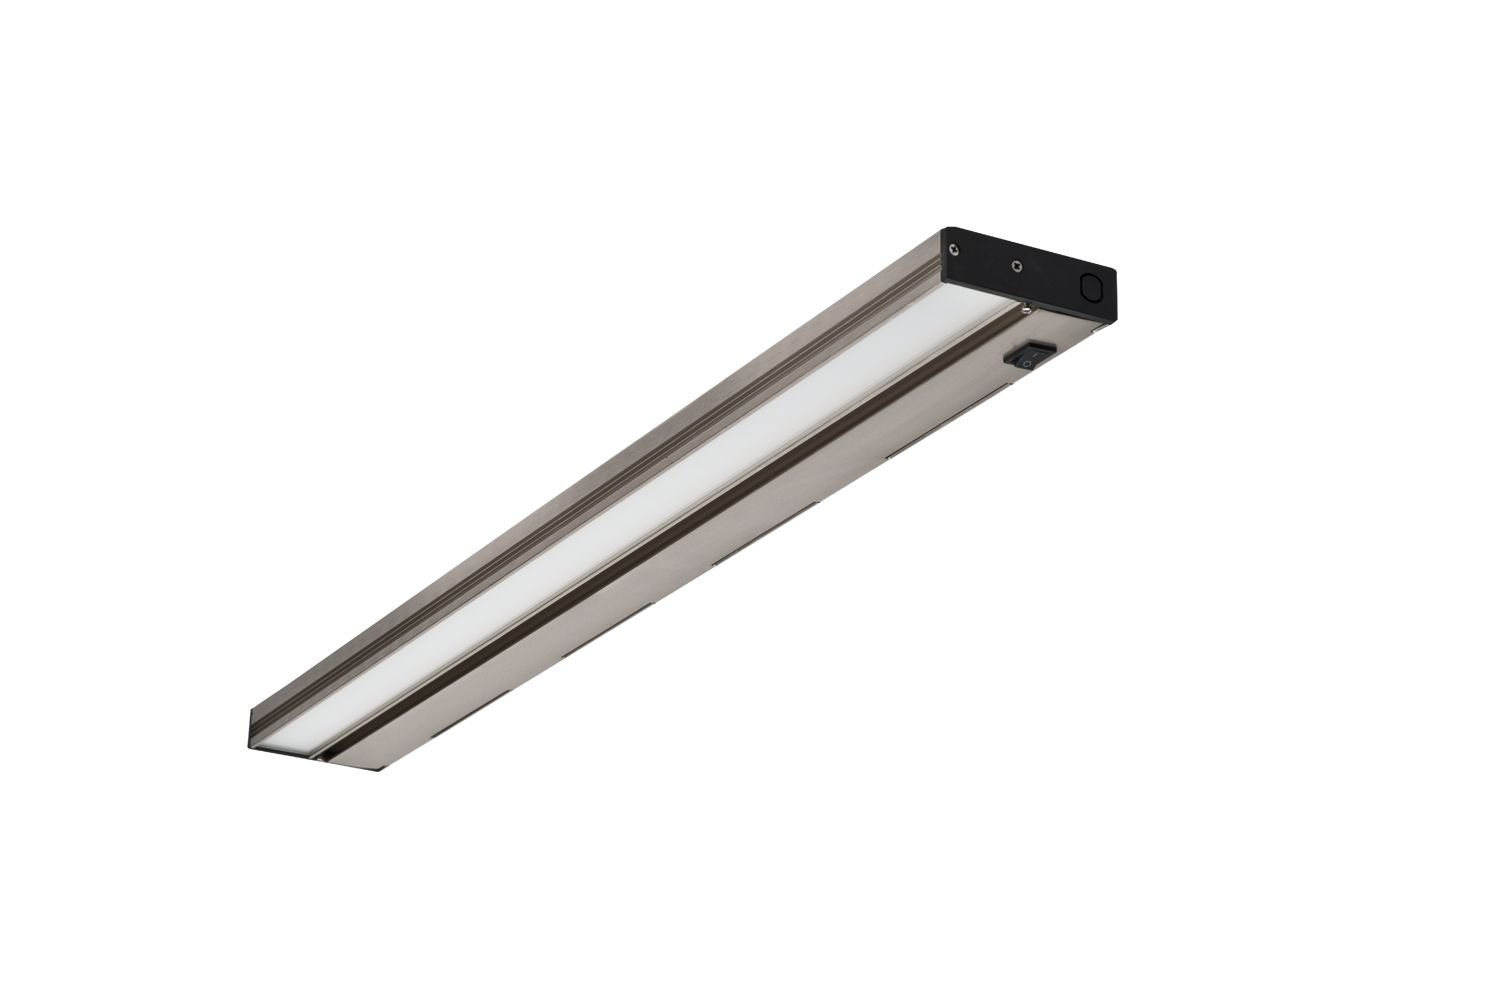 NICOR Lighting Slim 30-Inch Dimmable LED Under-Cabinet Lighting Fixture, Nickel (NUC-3-30-NK)